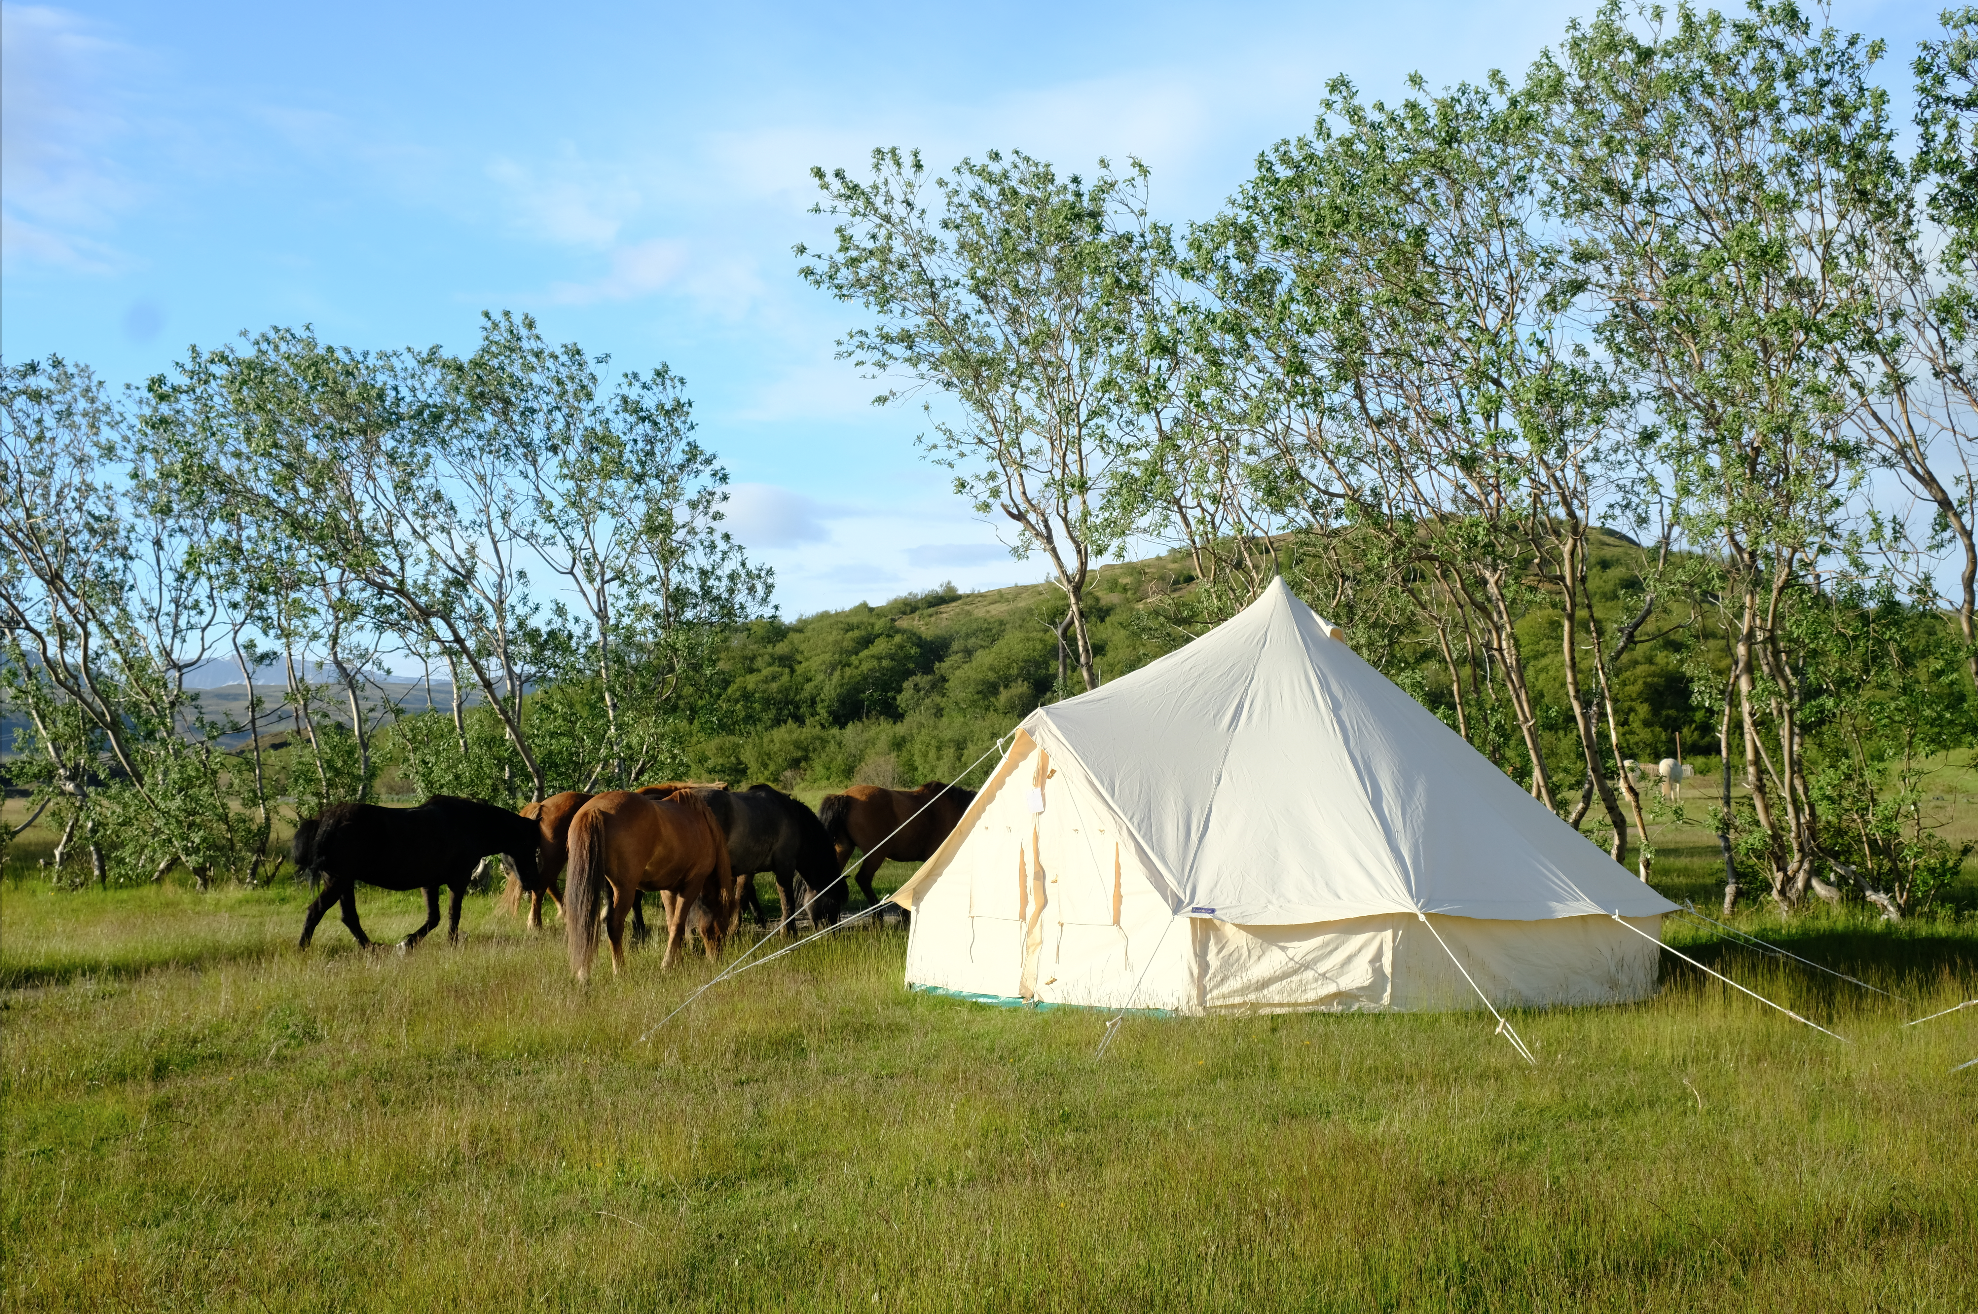 Our glamping tent with the Icelandic horses doing their daily lawn mowing.